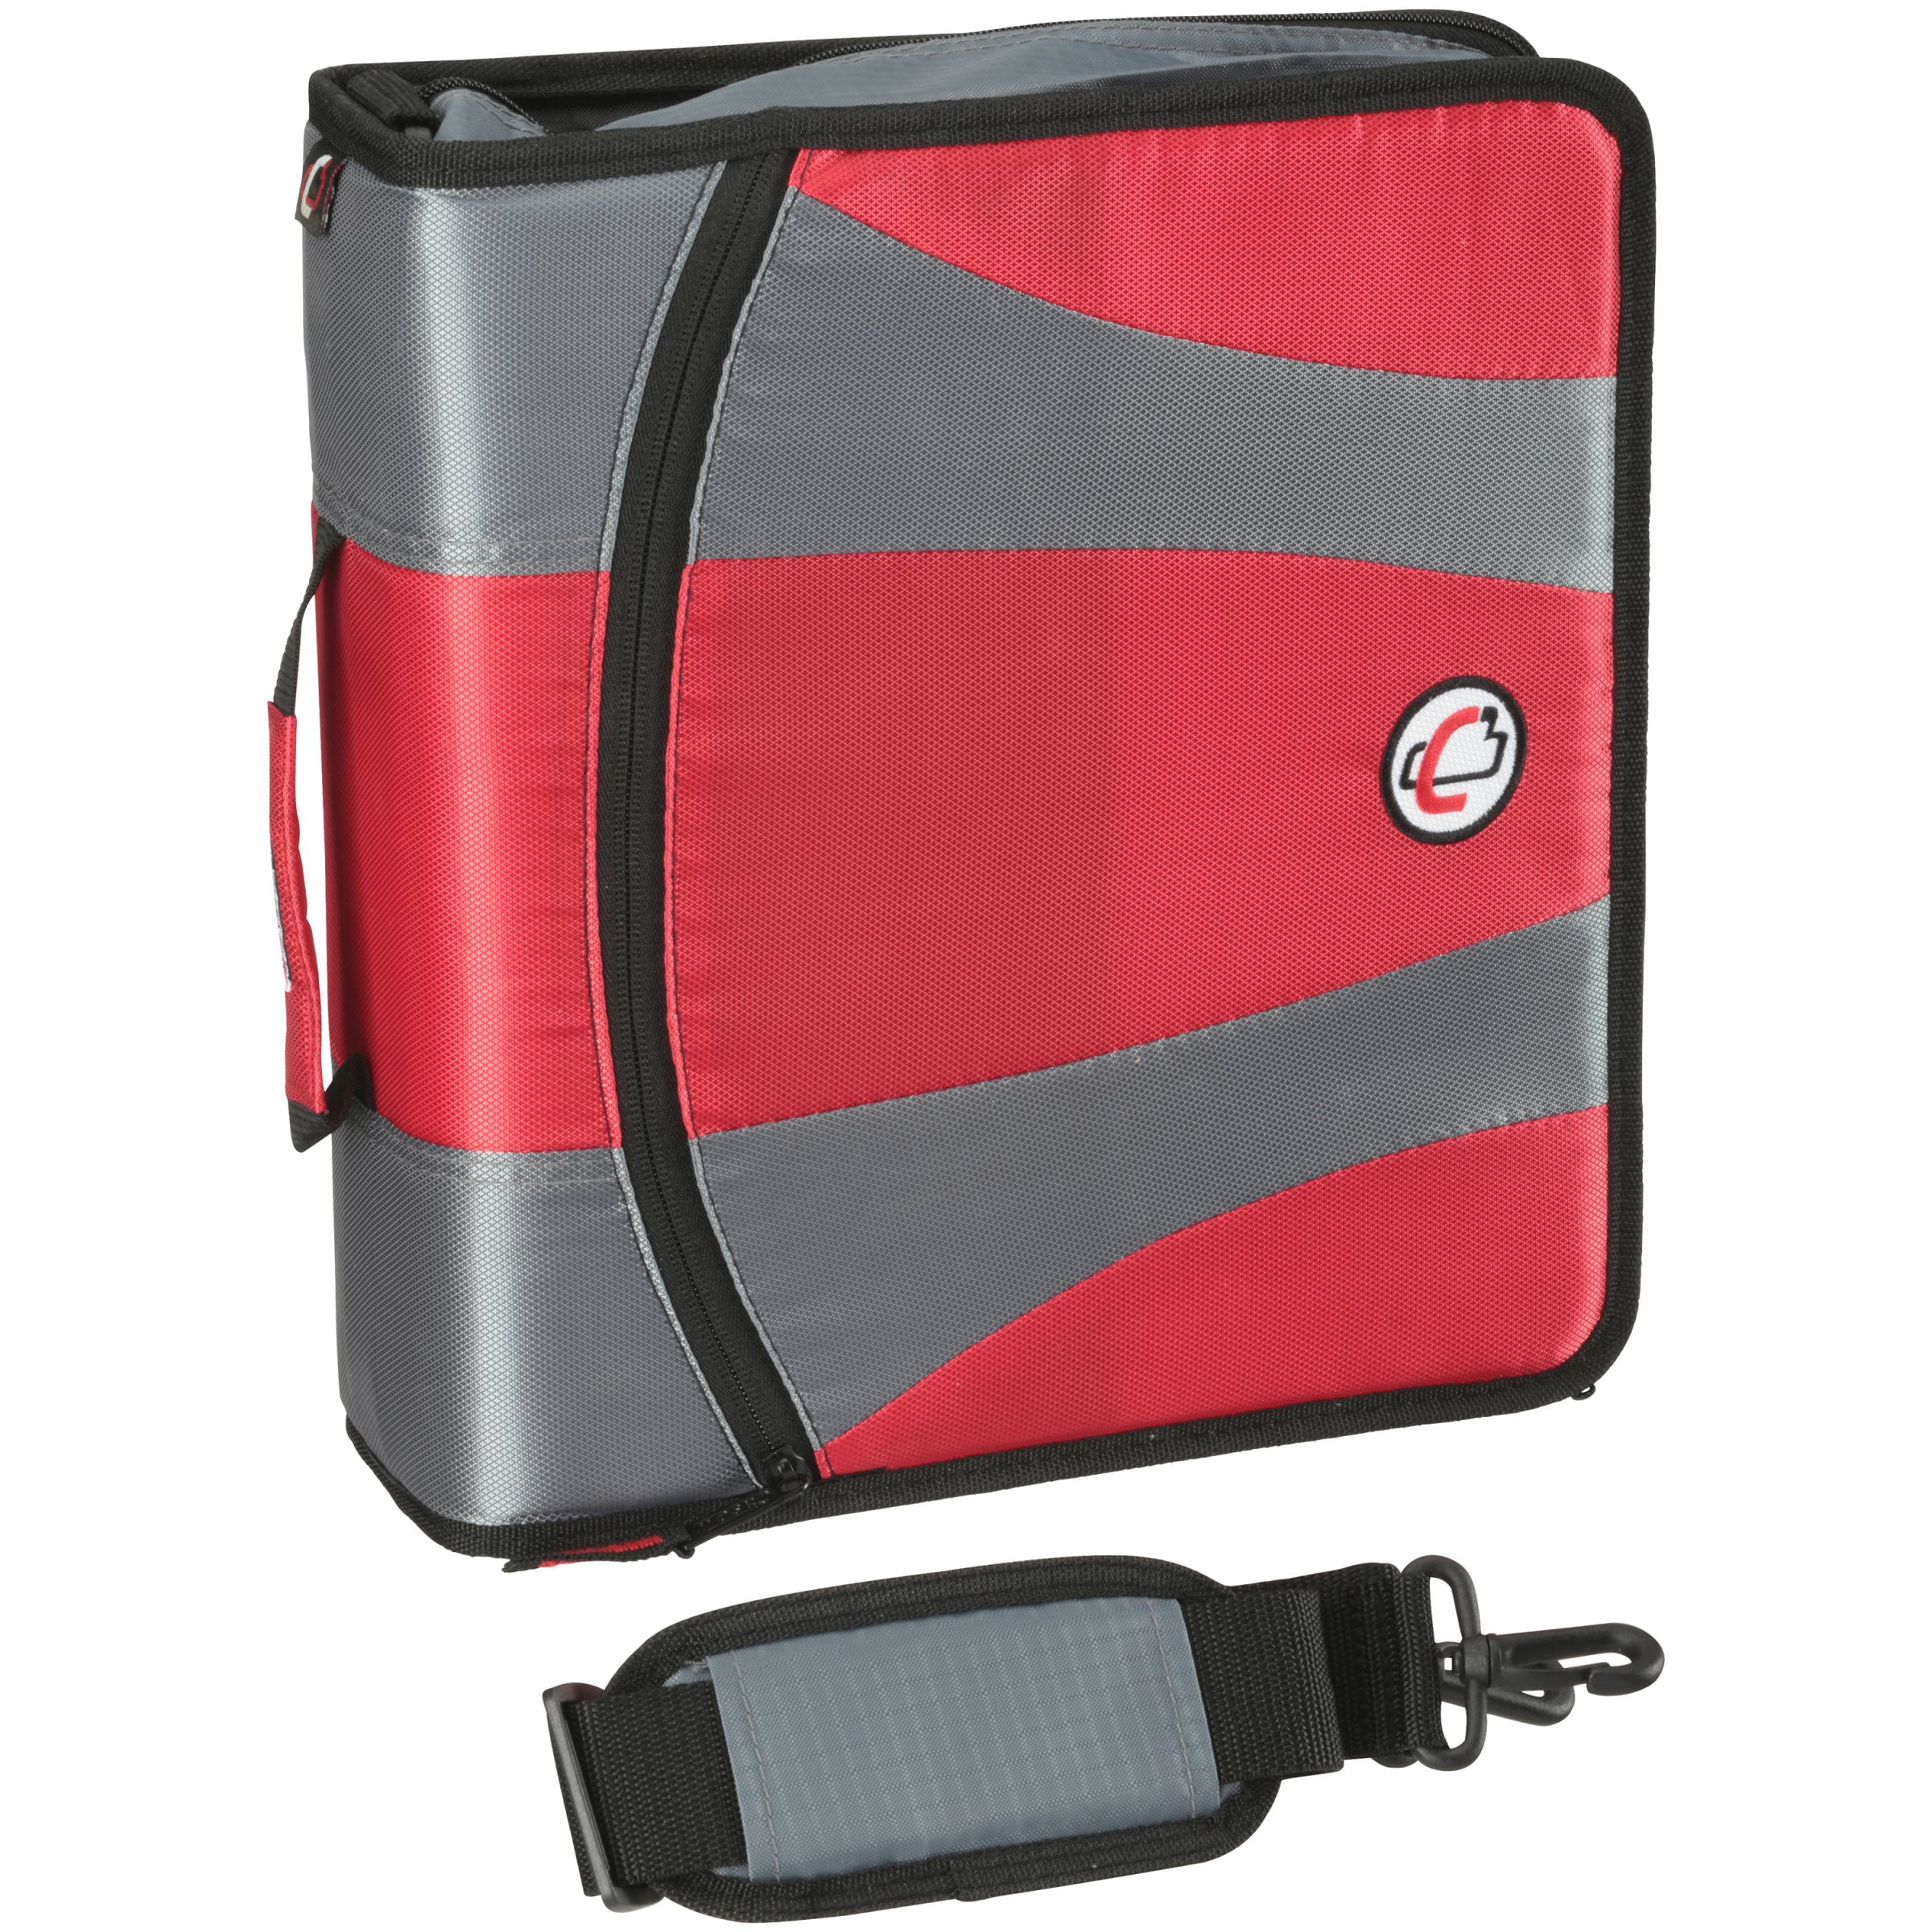 Case It Dual Ring Zipper Binder, Red, 4 Inch, DUAL-301